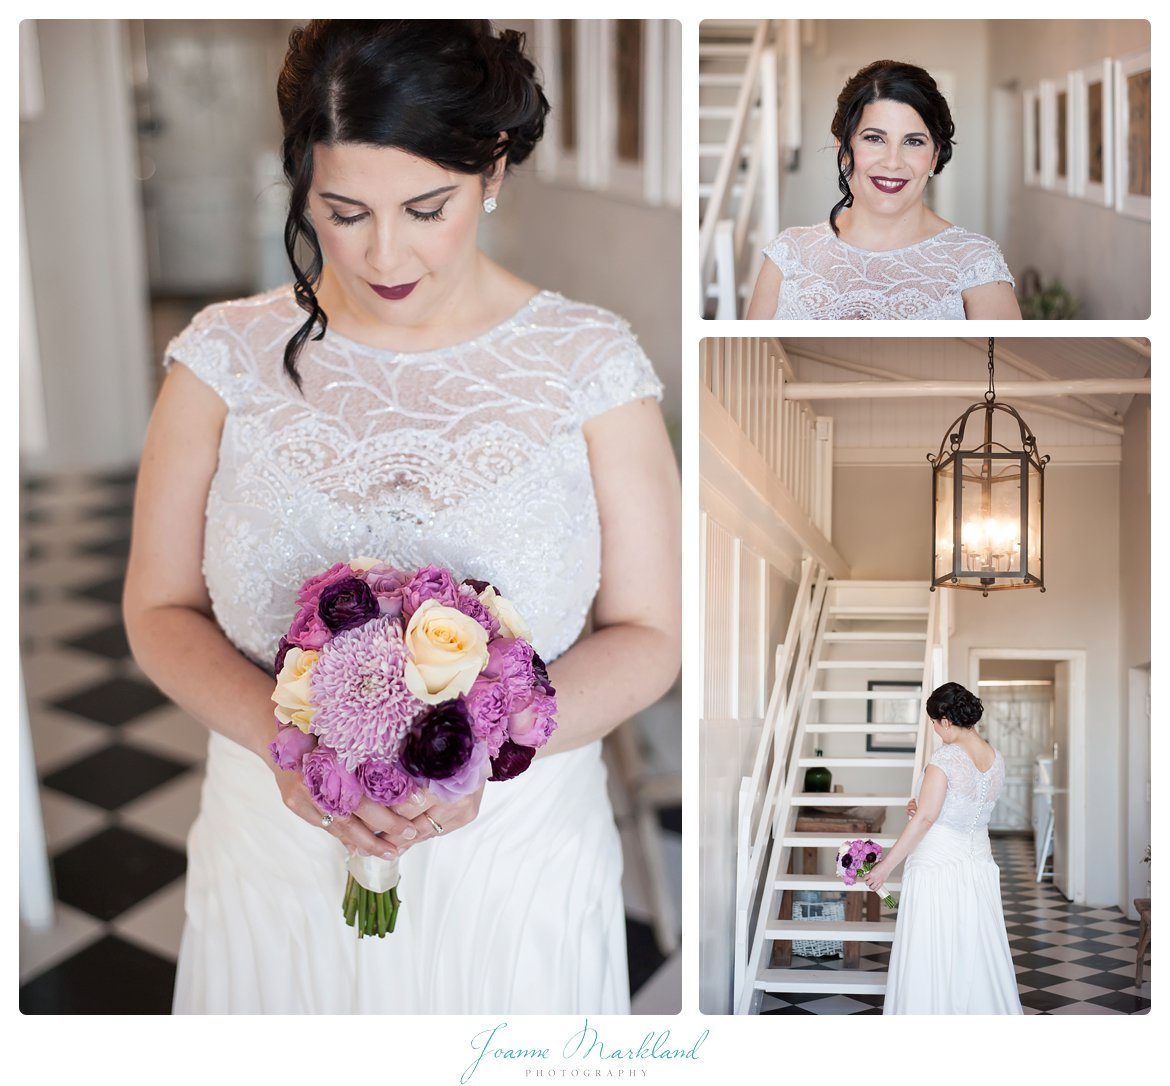 boorwater-wedding-hopefield-west-coast-cape-town-joanne-markland-photography-010